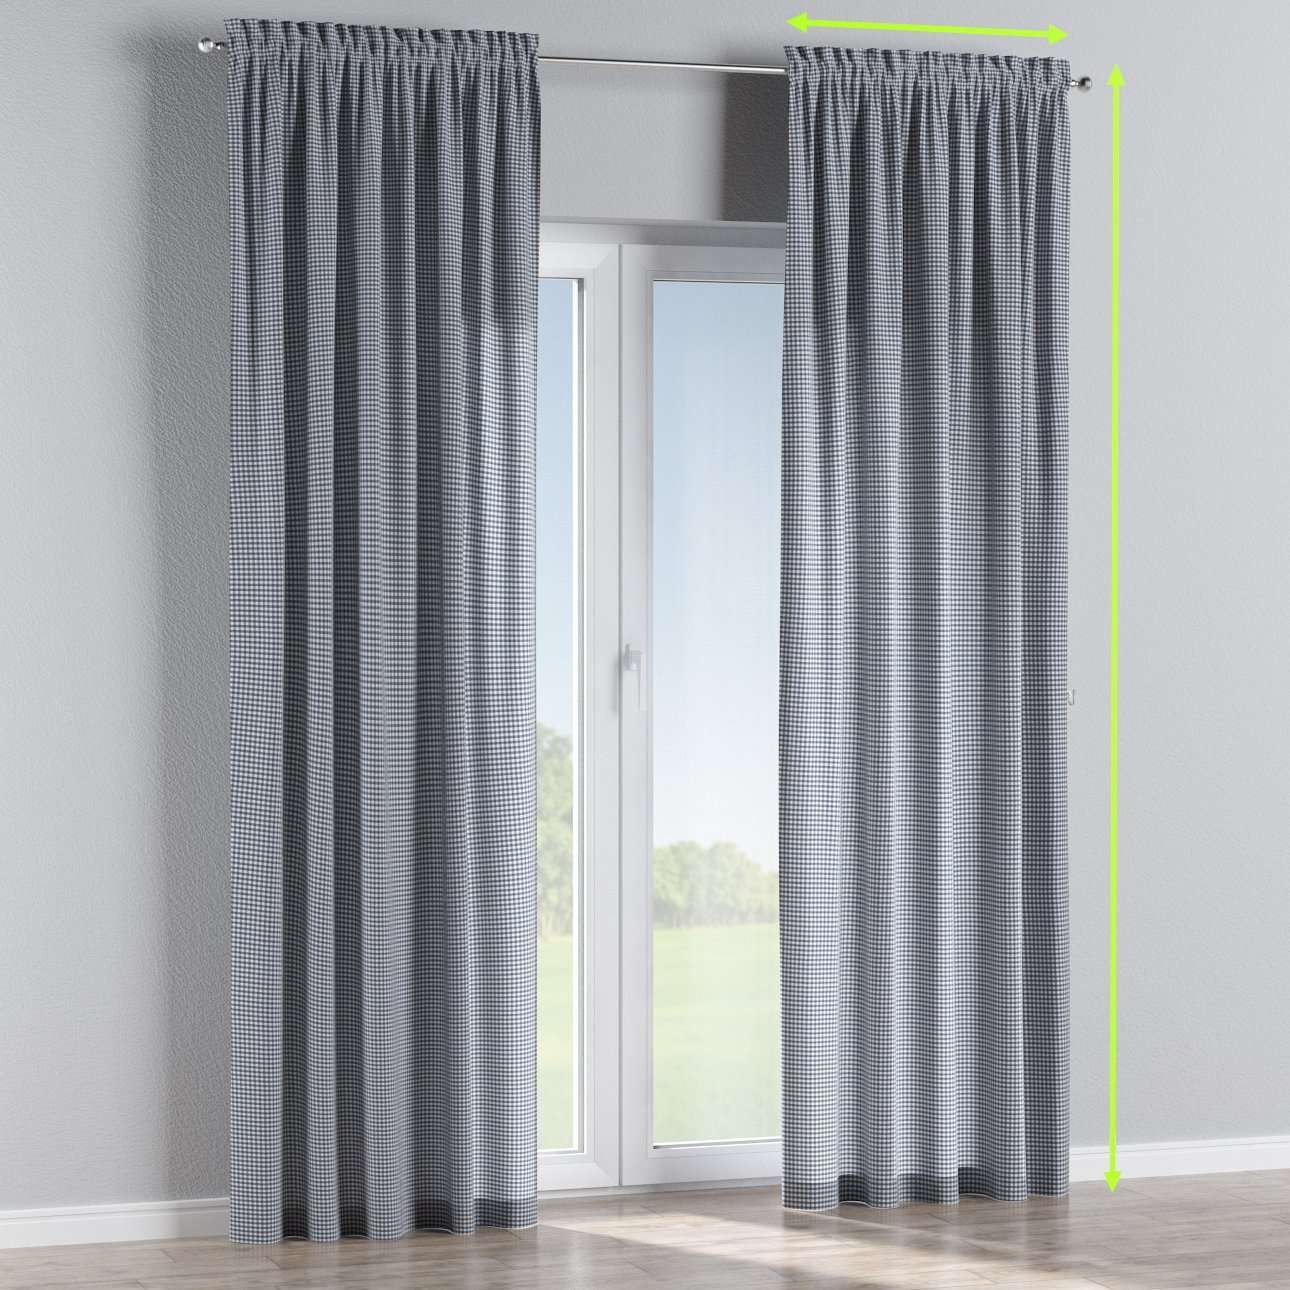 Slot and frill lined curtains in collection Quadro, fabric: 136-00